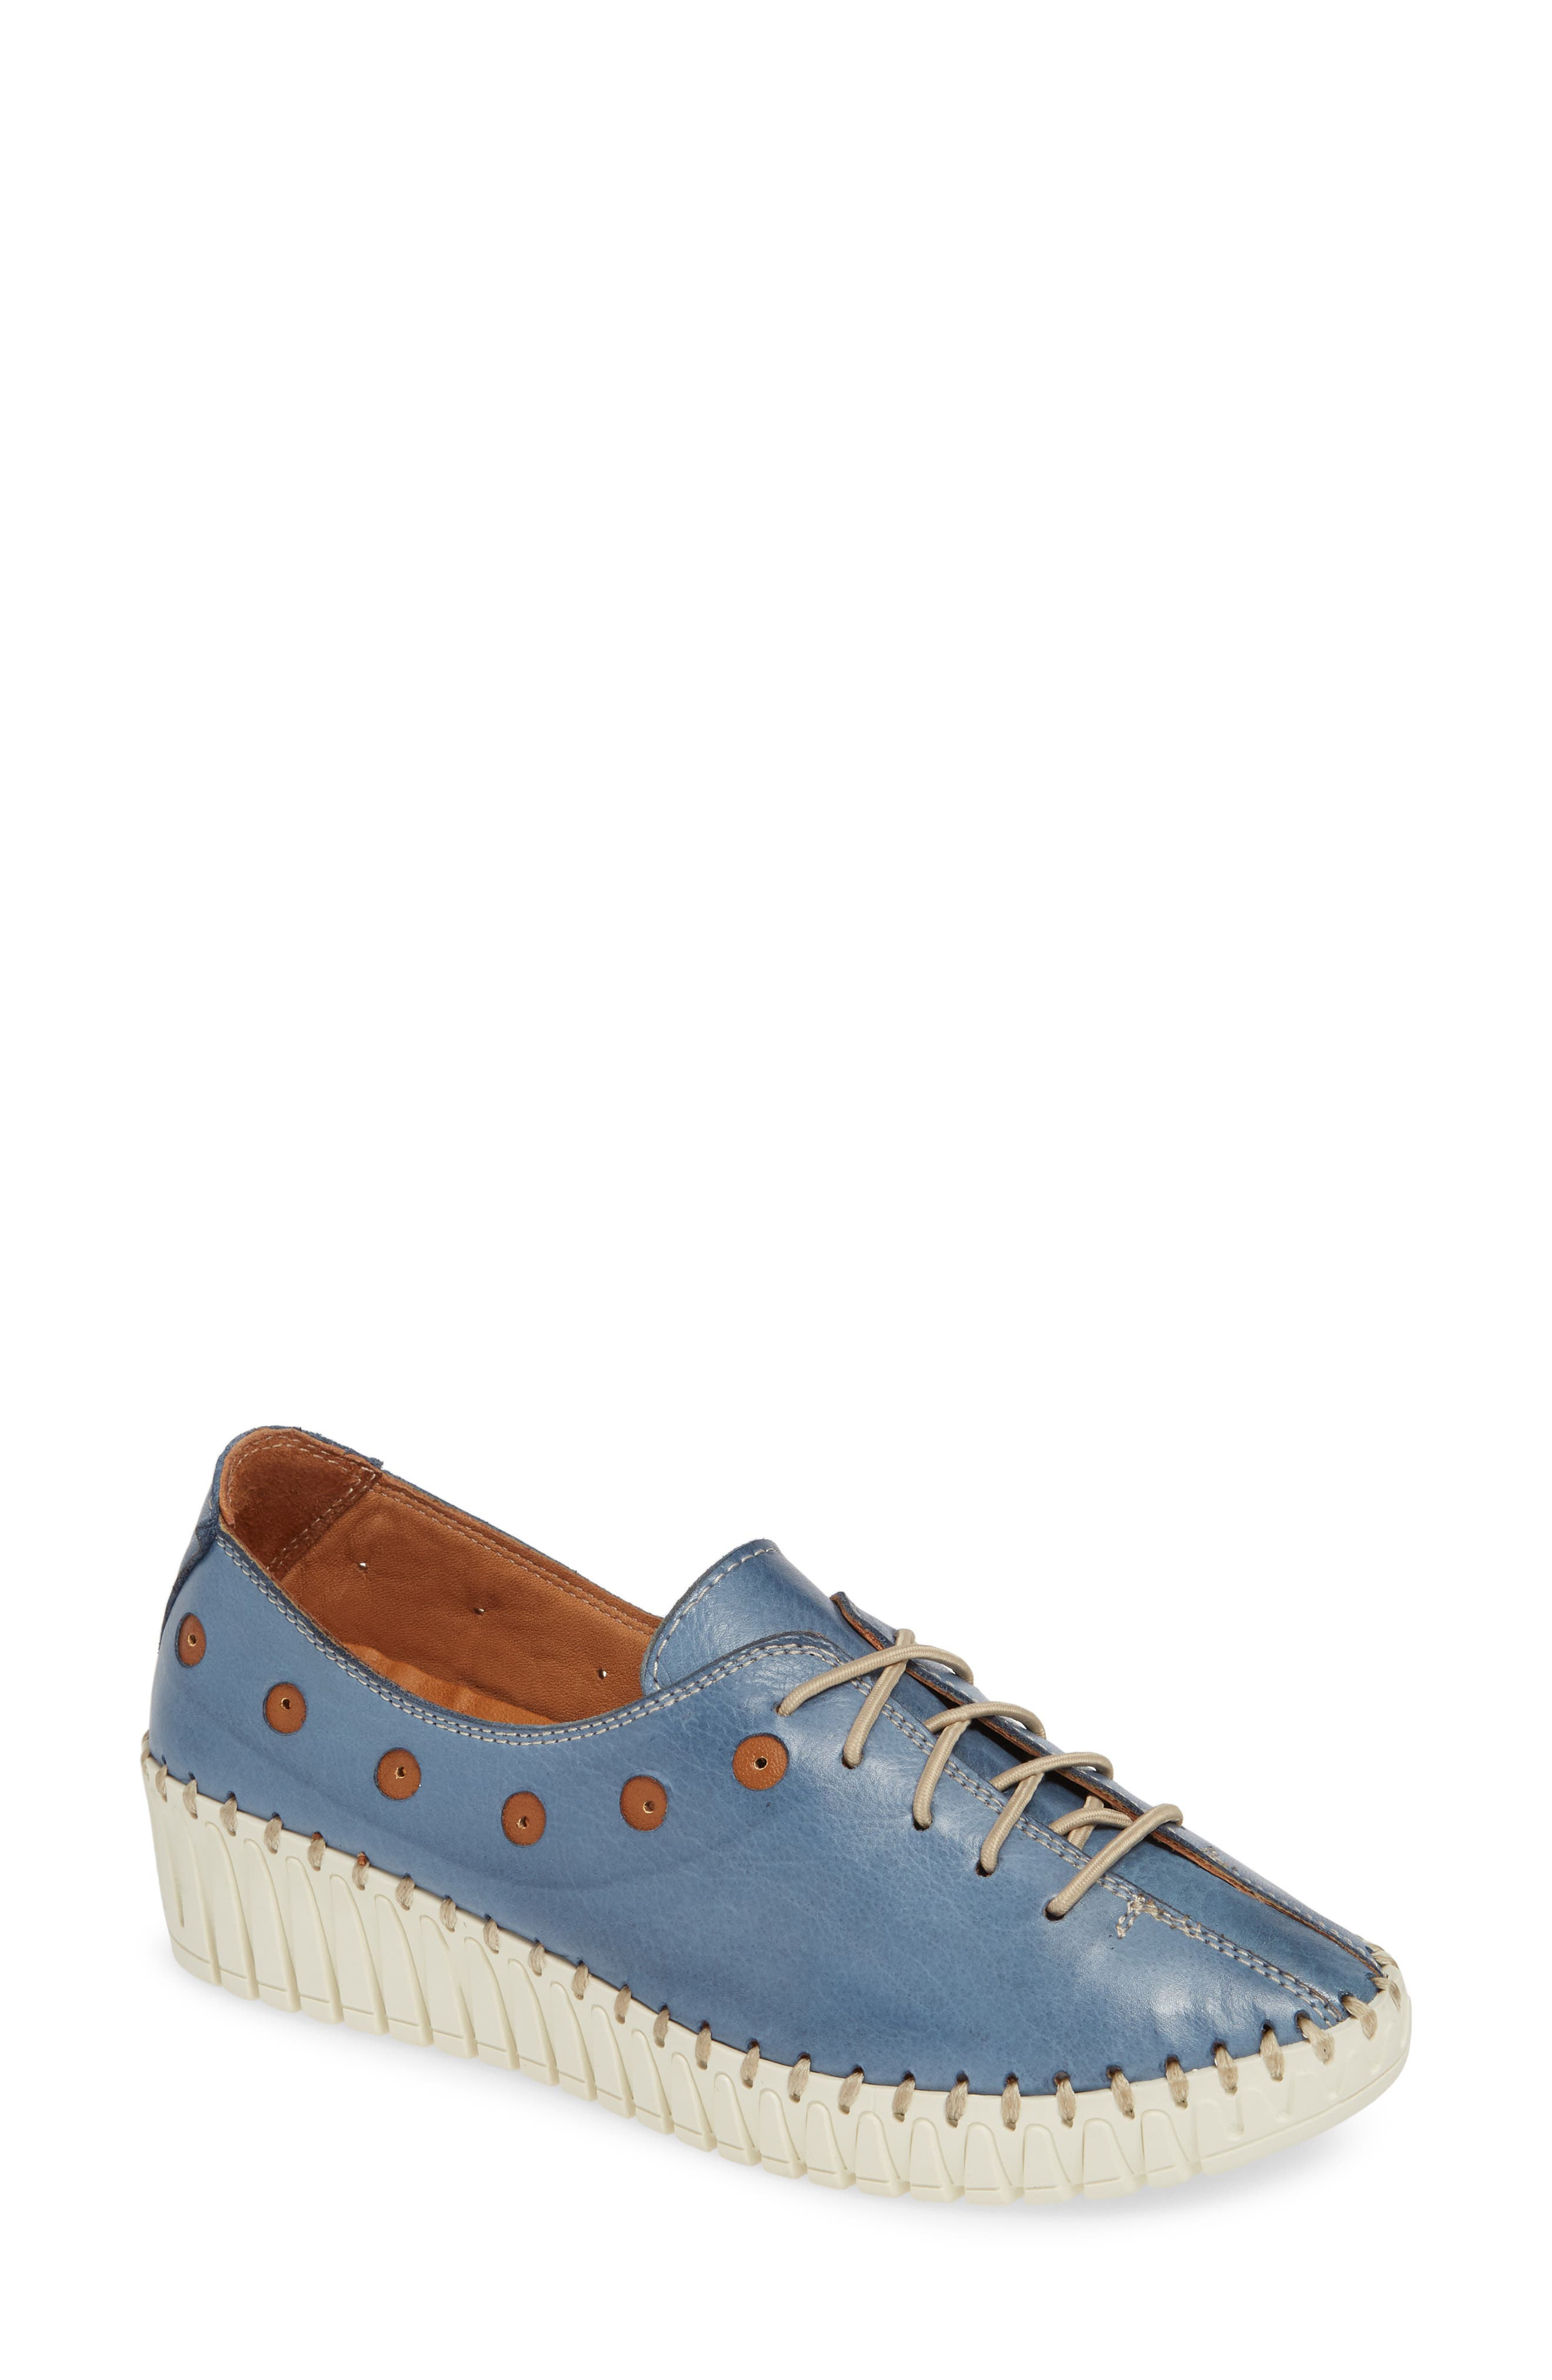 SHERIDAN MIA Kyle Sneaker, Main, color, JEANS LEATHER